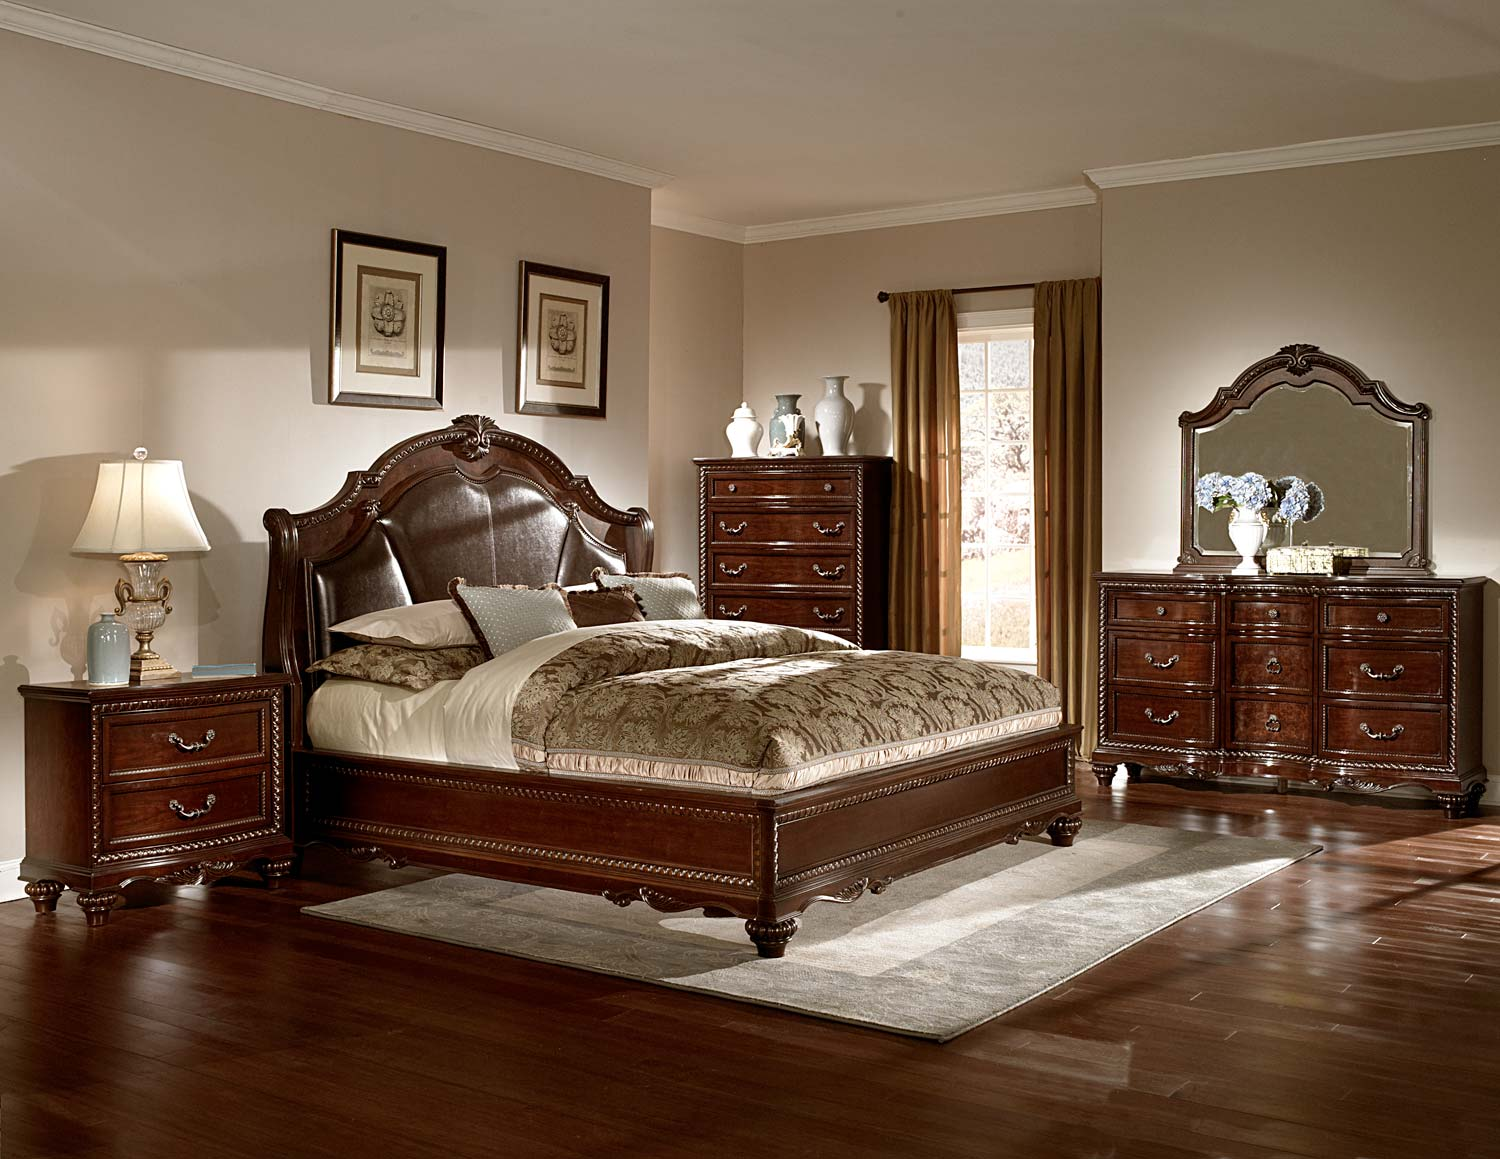 Homelegance Hampstead Court Bedroom Set - Cherry B2214-BED ...